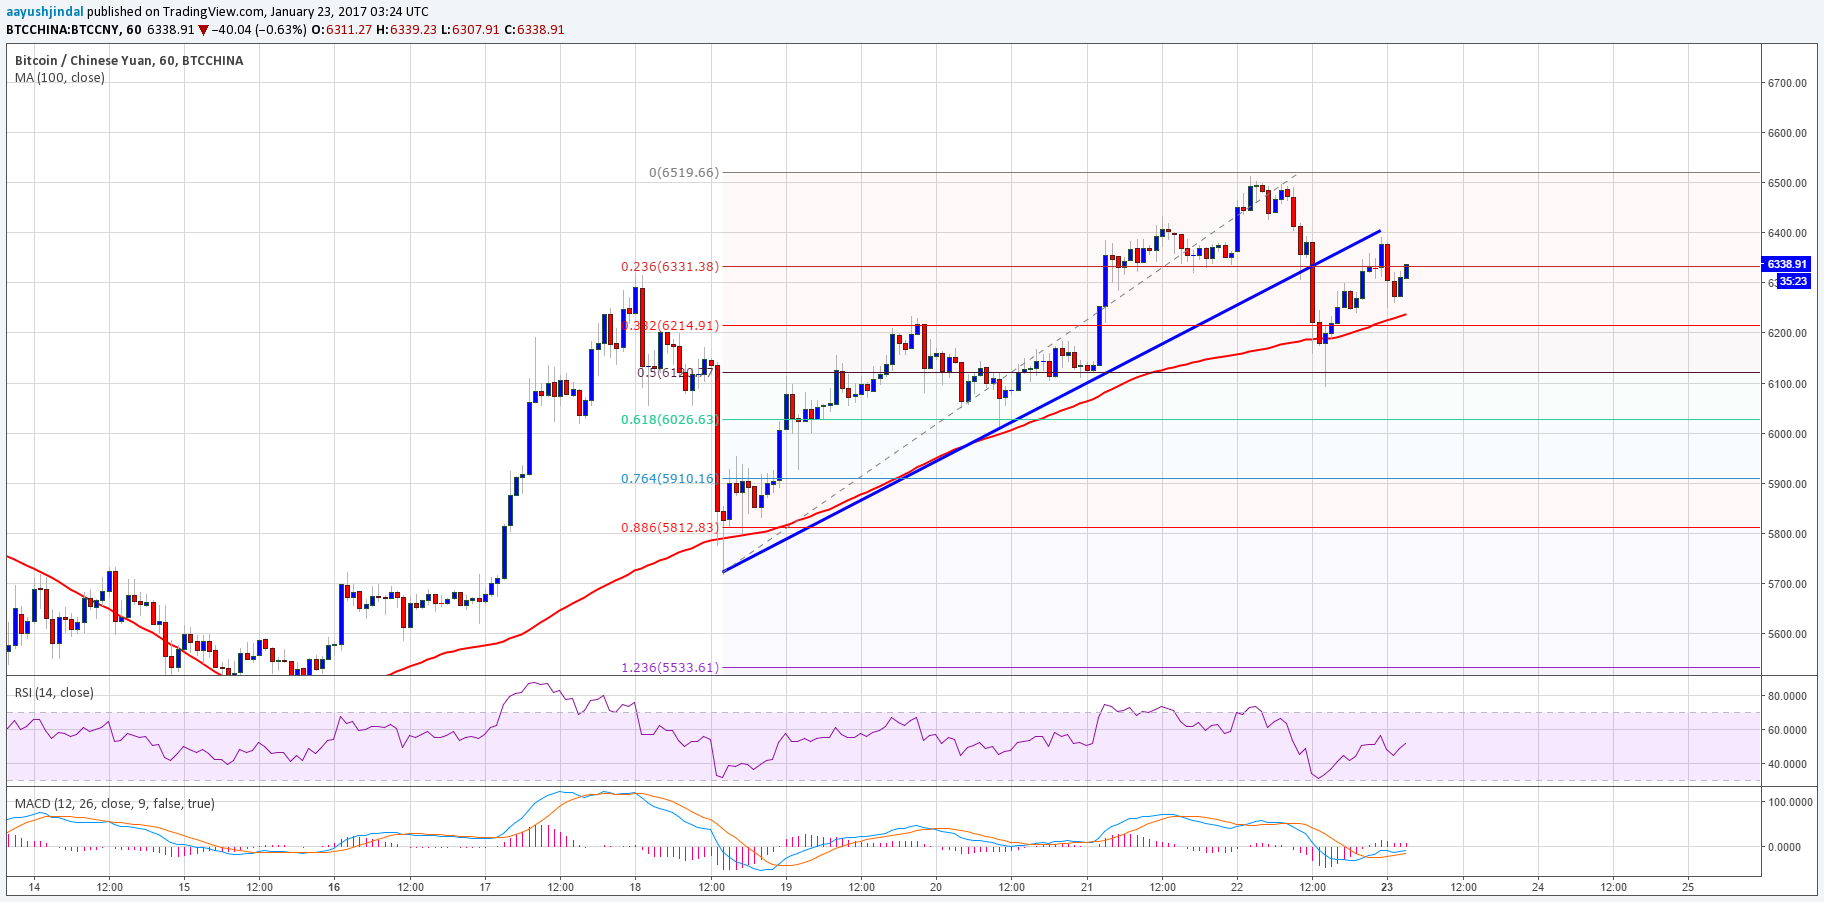 Bitcoin Price Analysis: BTC/CNY Started Correction? - Bitcoinadvice ...